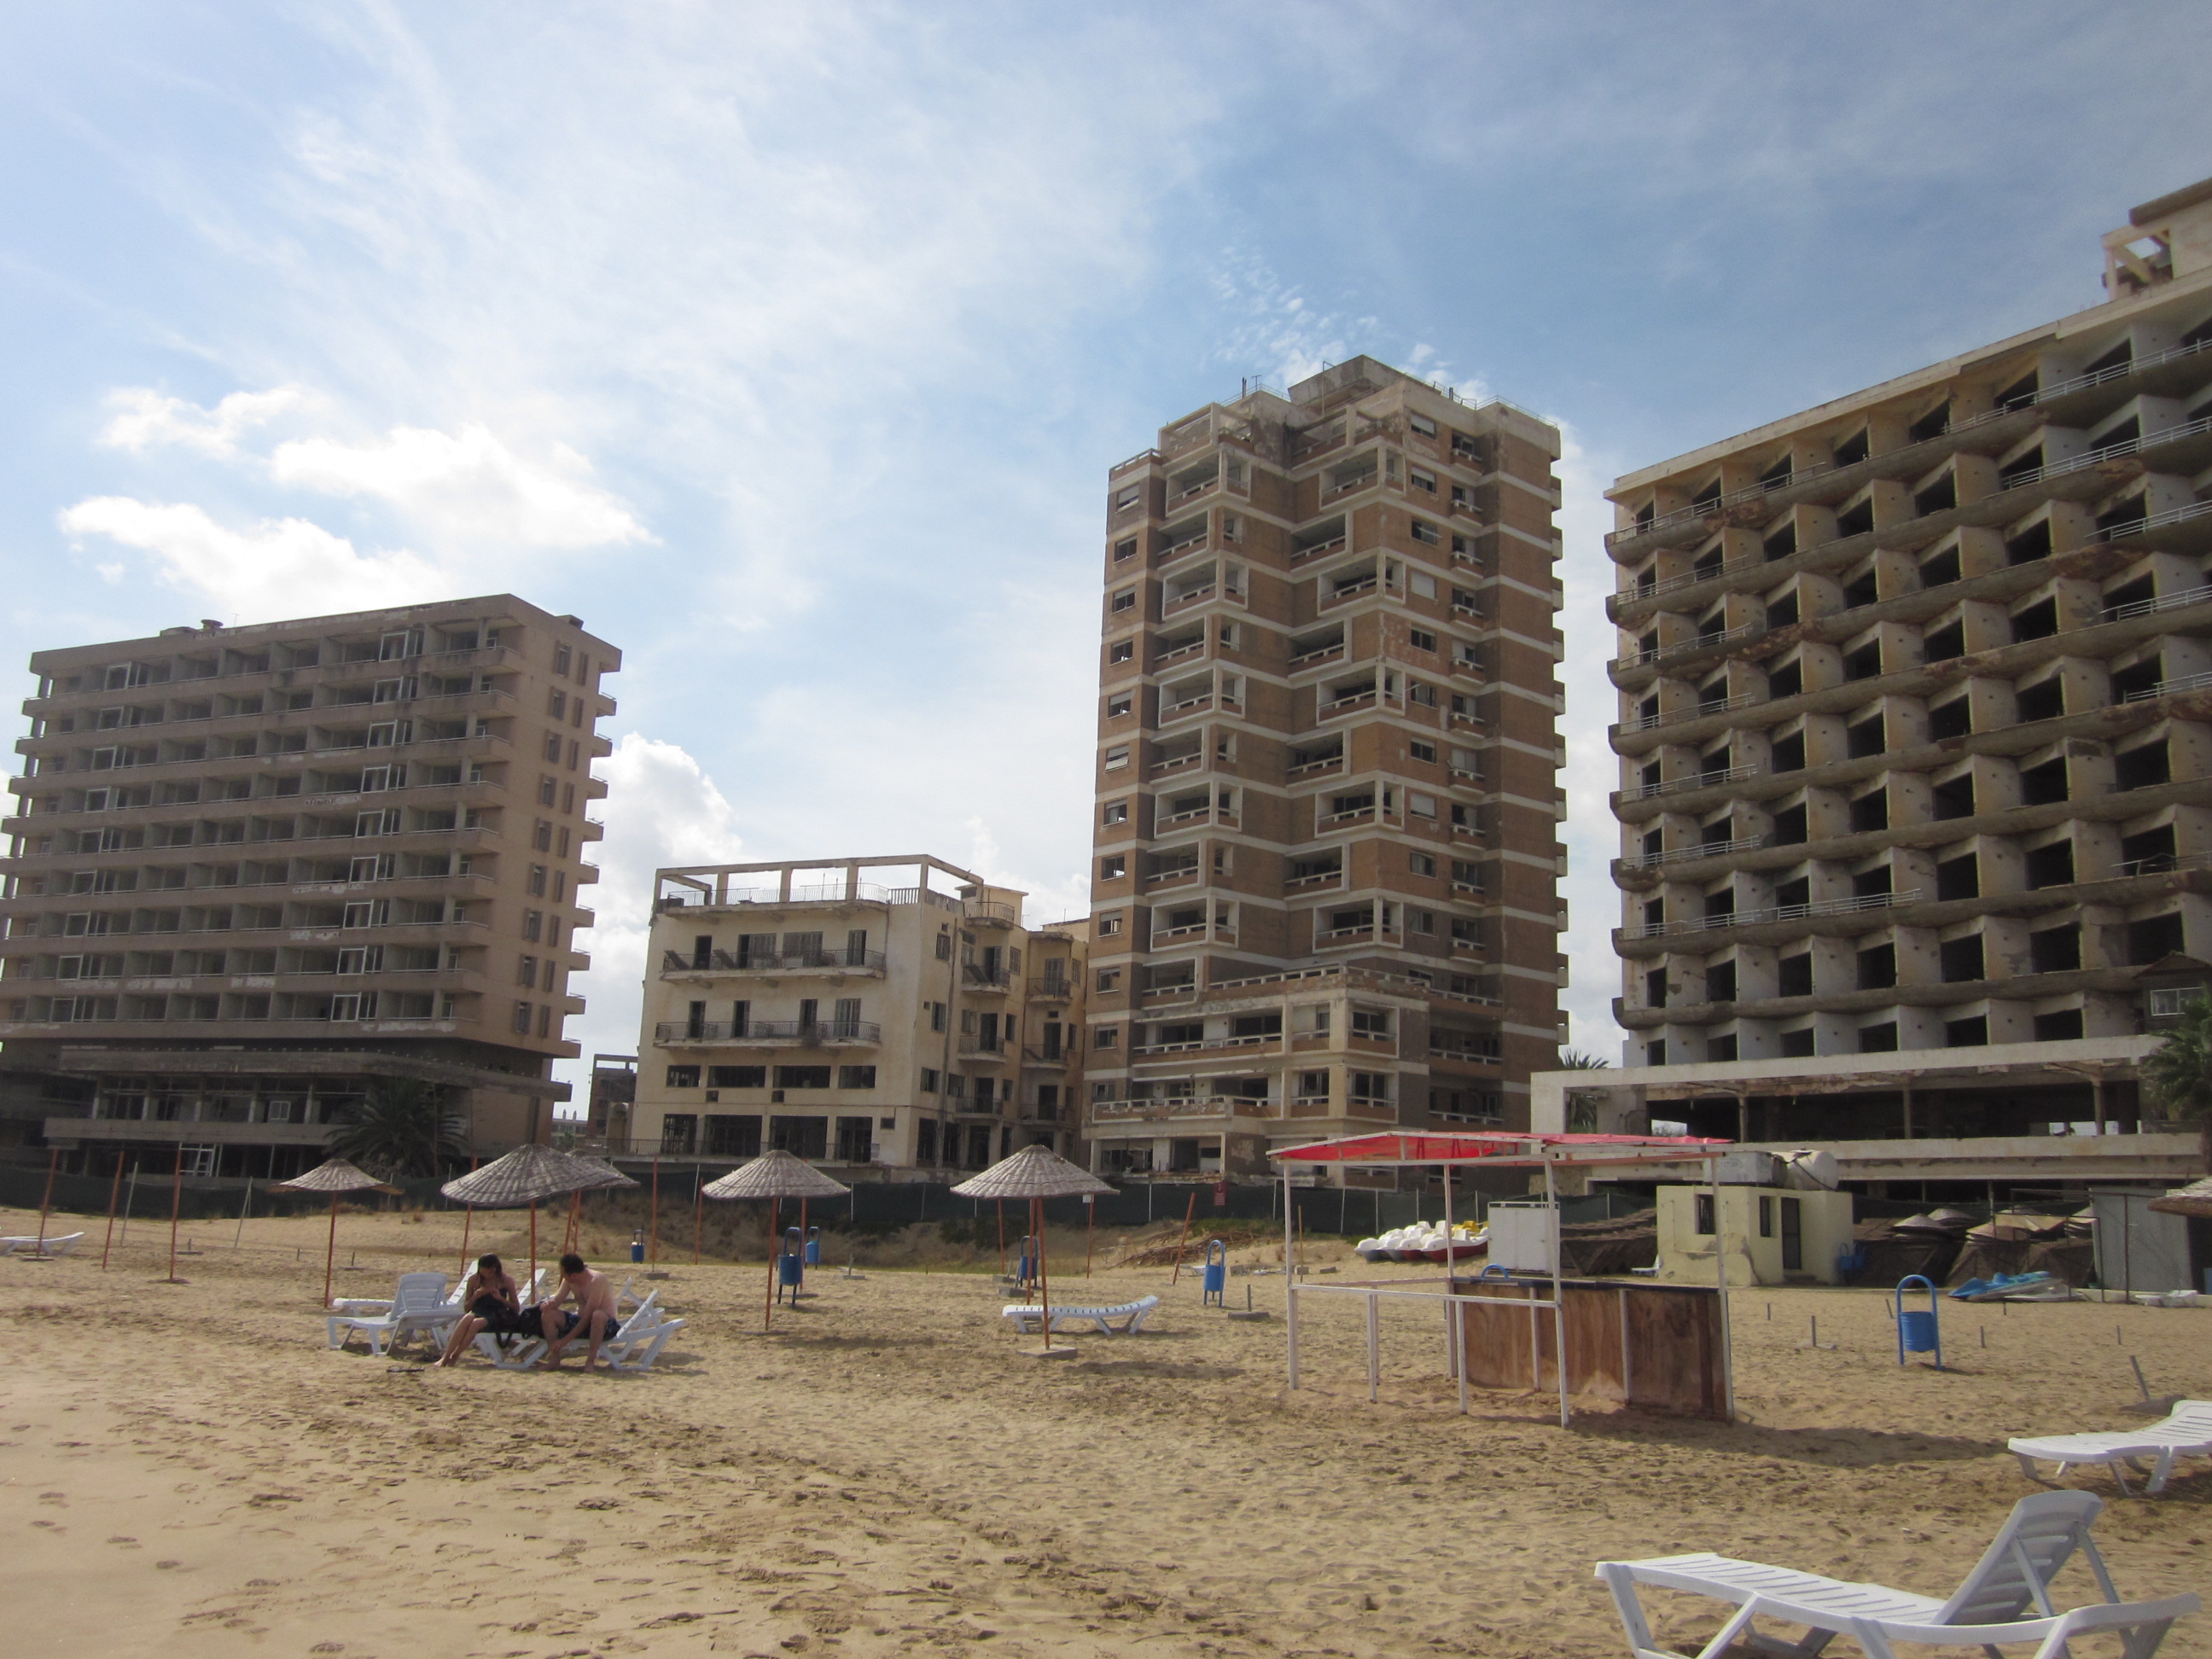 Famagusta ghost town